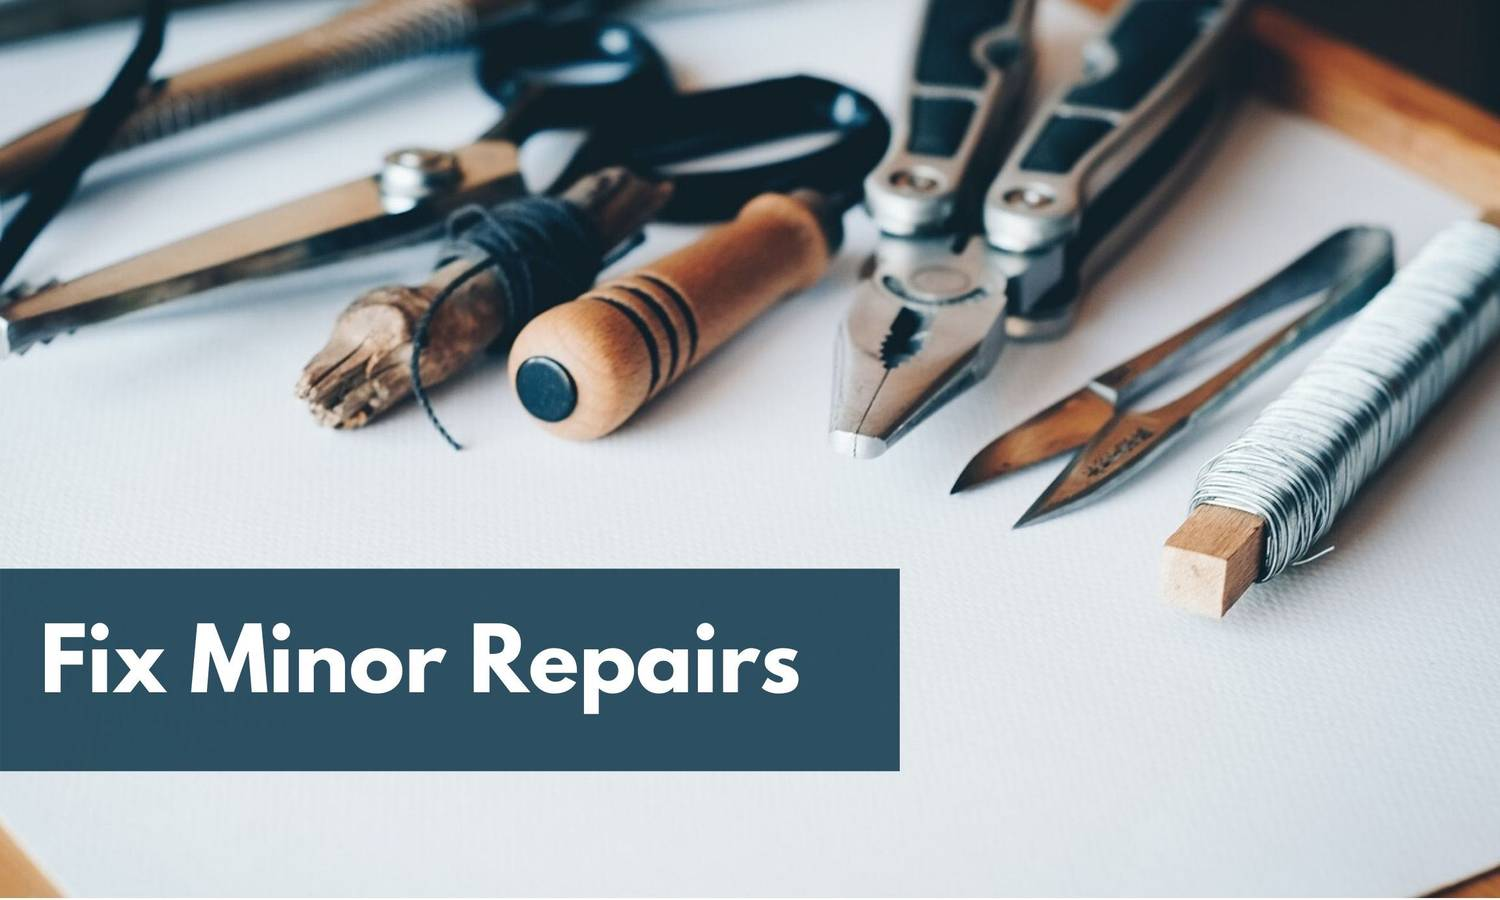 Increase The Value Of Your Home: Fix Minor Repairs